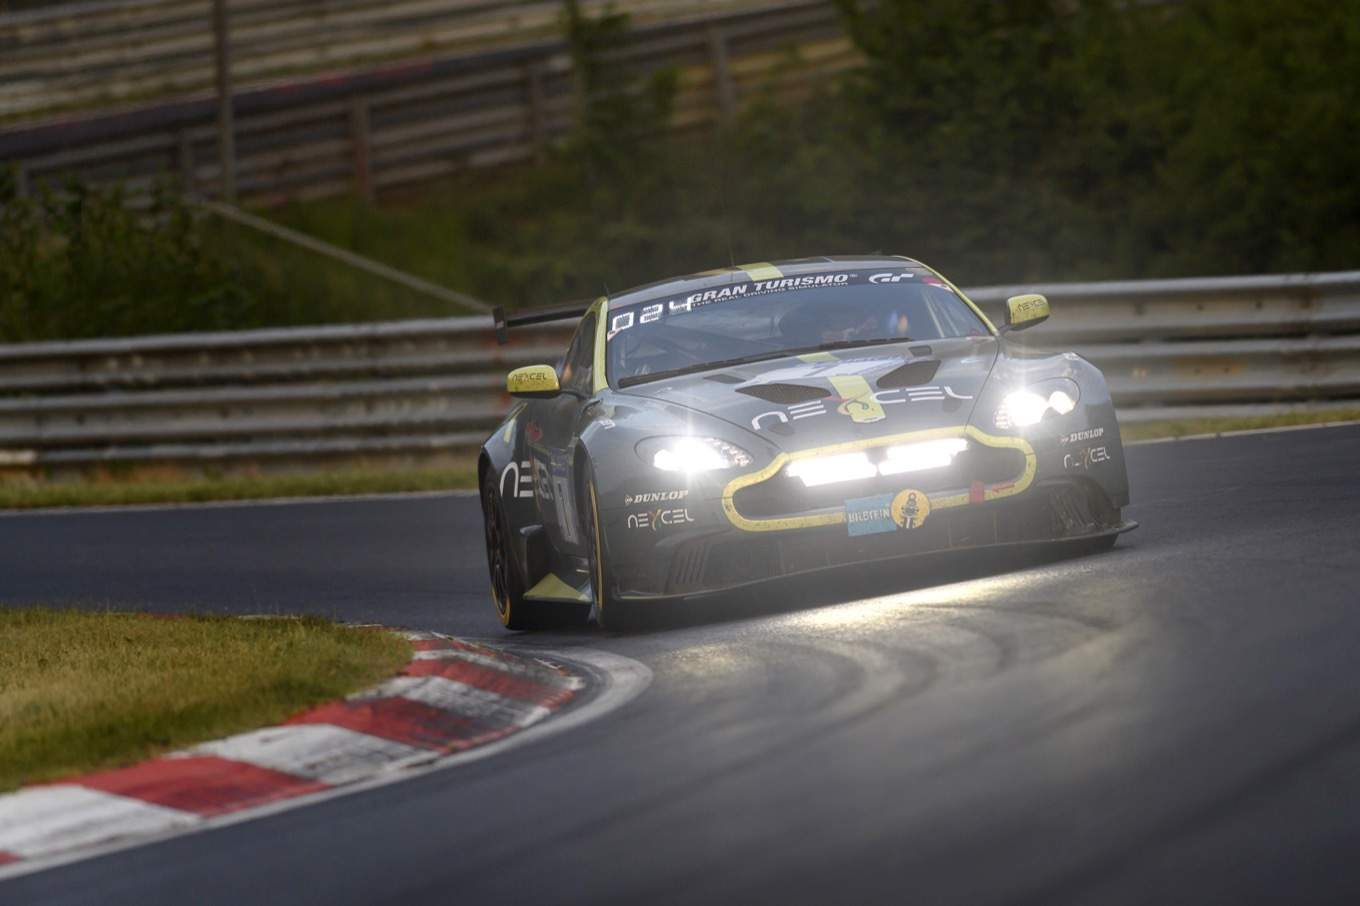 ASTON MARTIN VANTAGE GT8 TAKES HONOURS AT NÜRBURGRING 24 HOURS